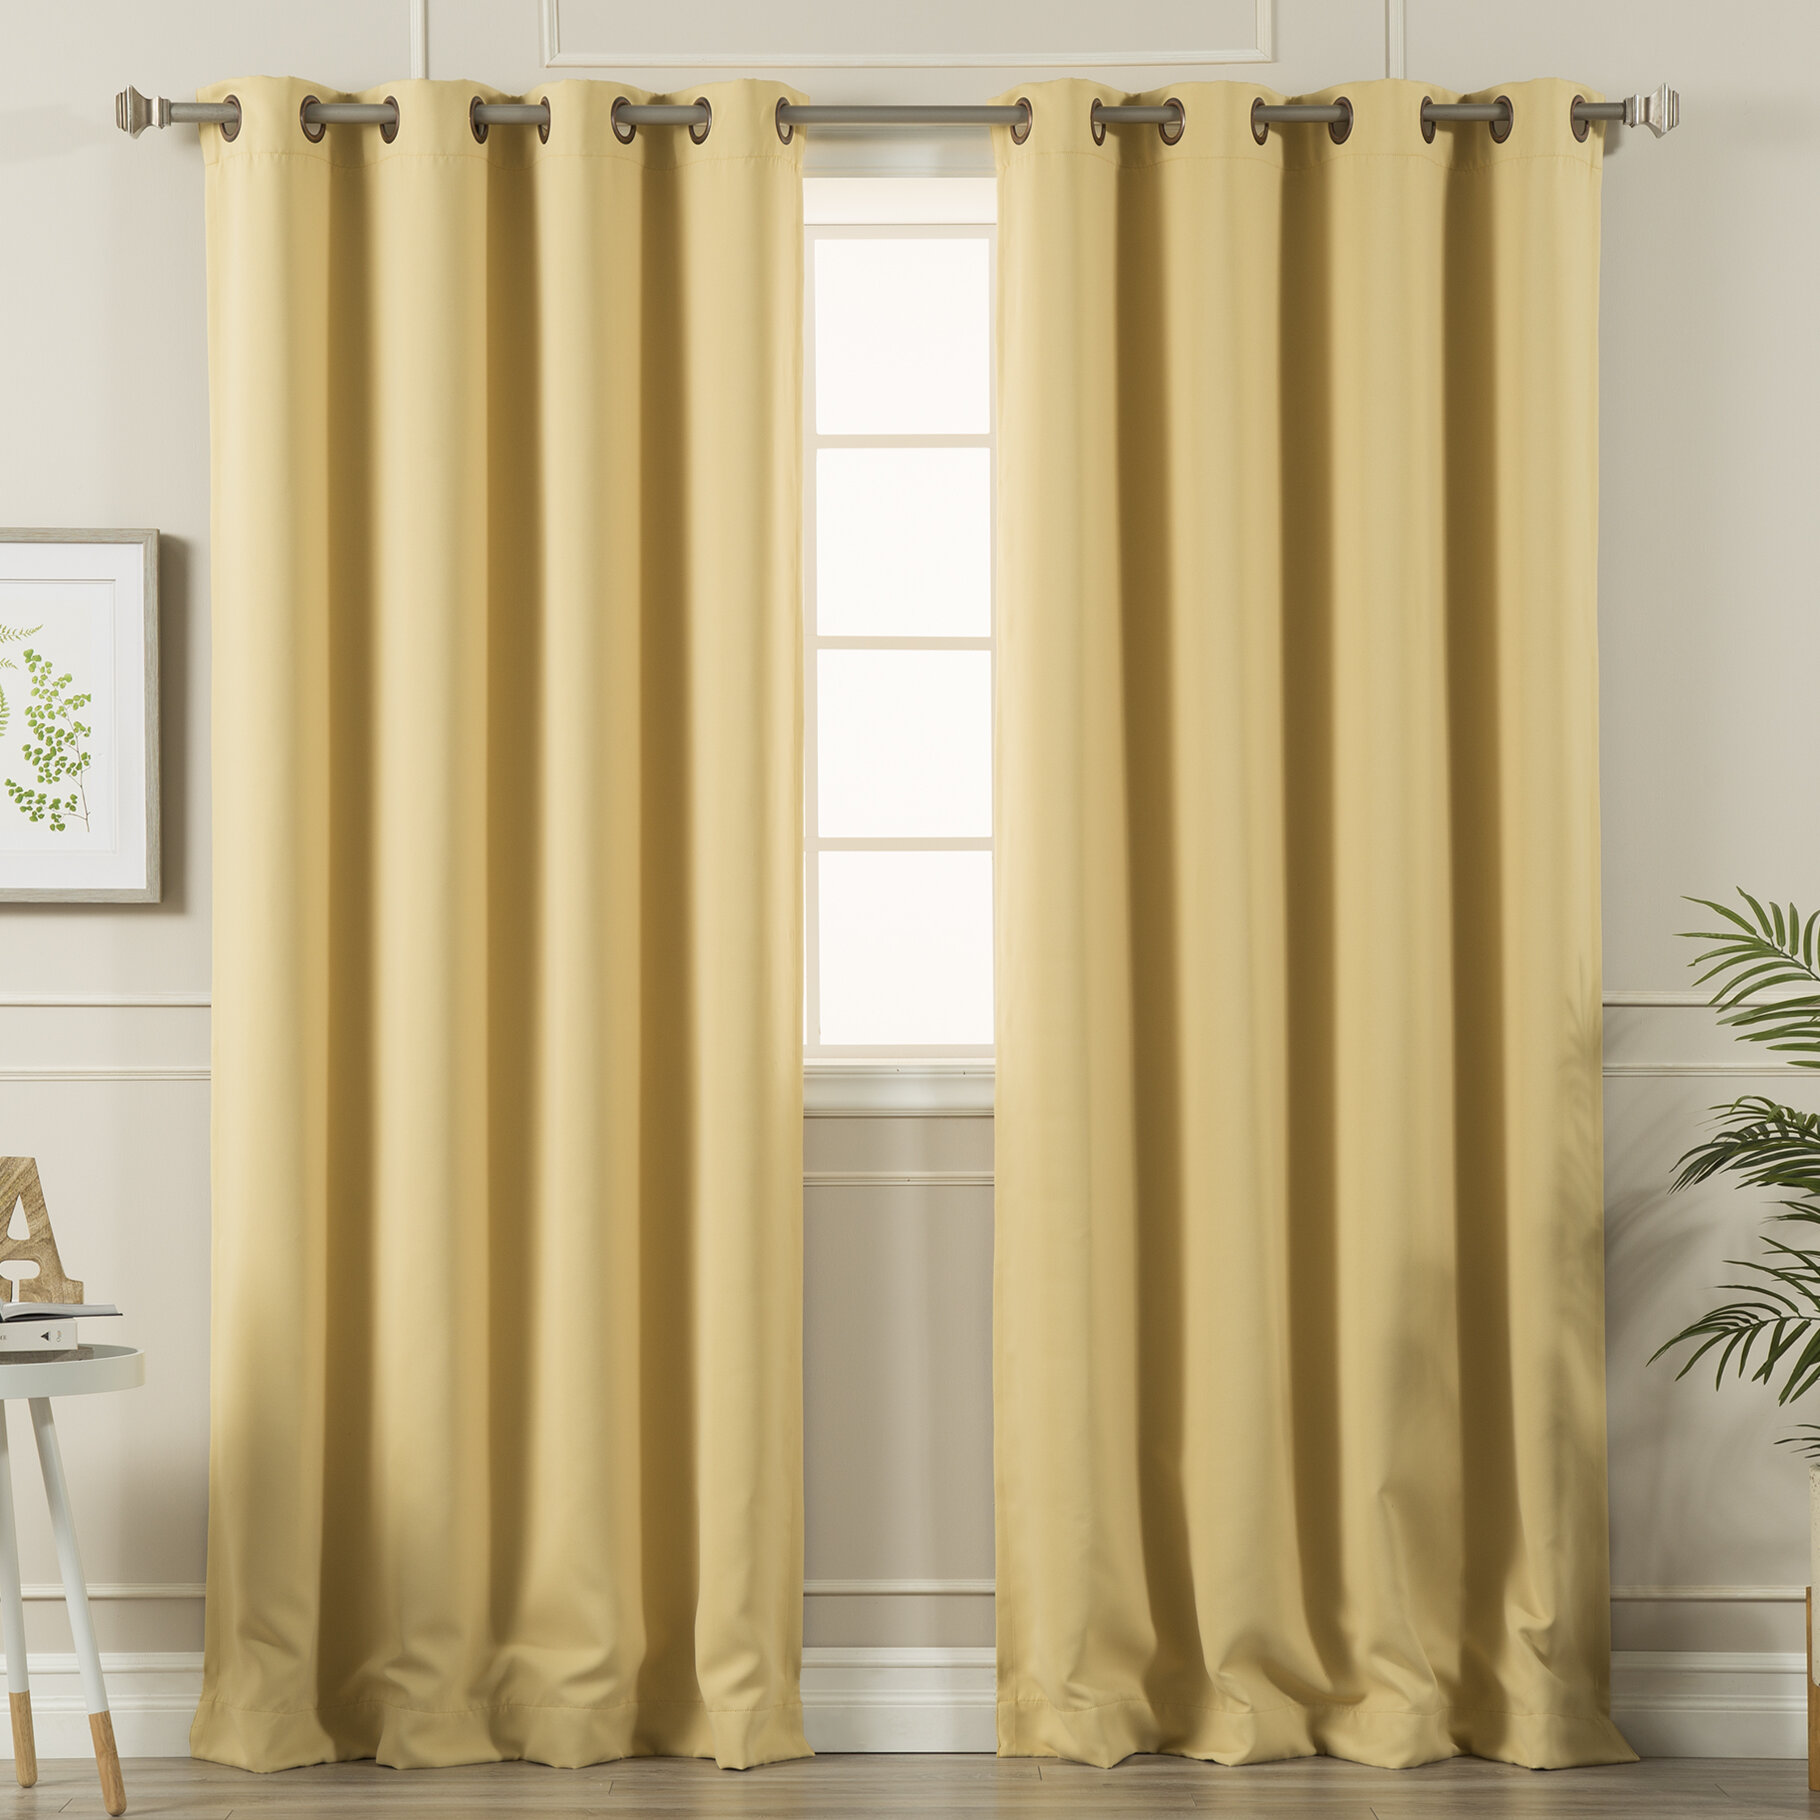 2 panel Decor 3D Blockout Window Curtain Scenic Drapes Merry Christmas Day 1011